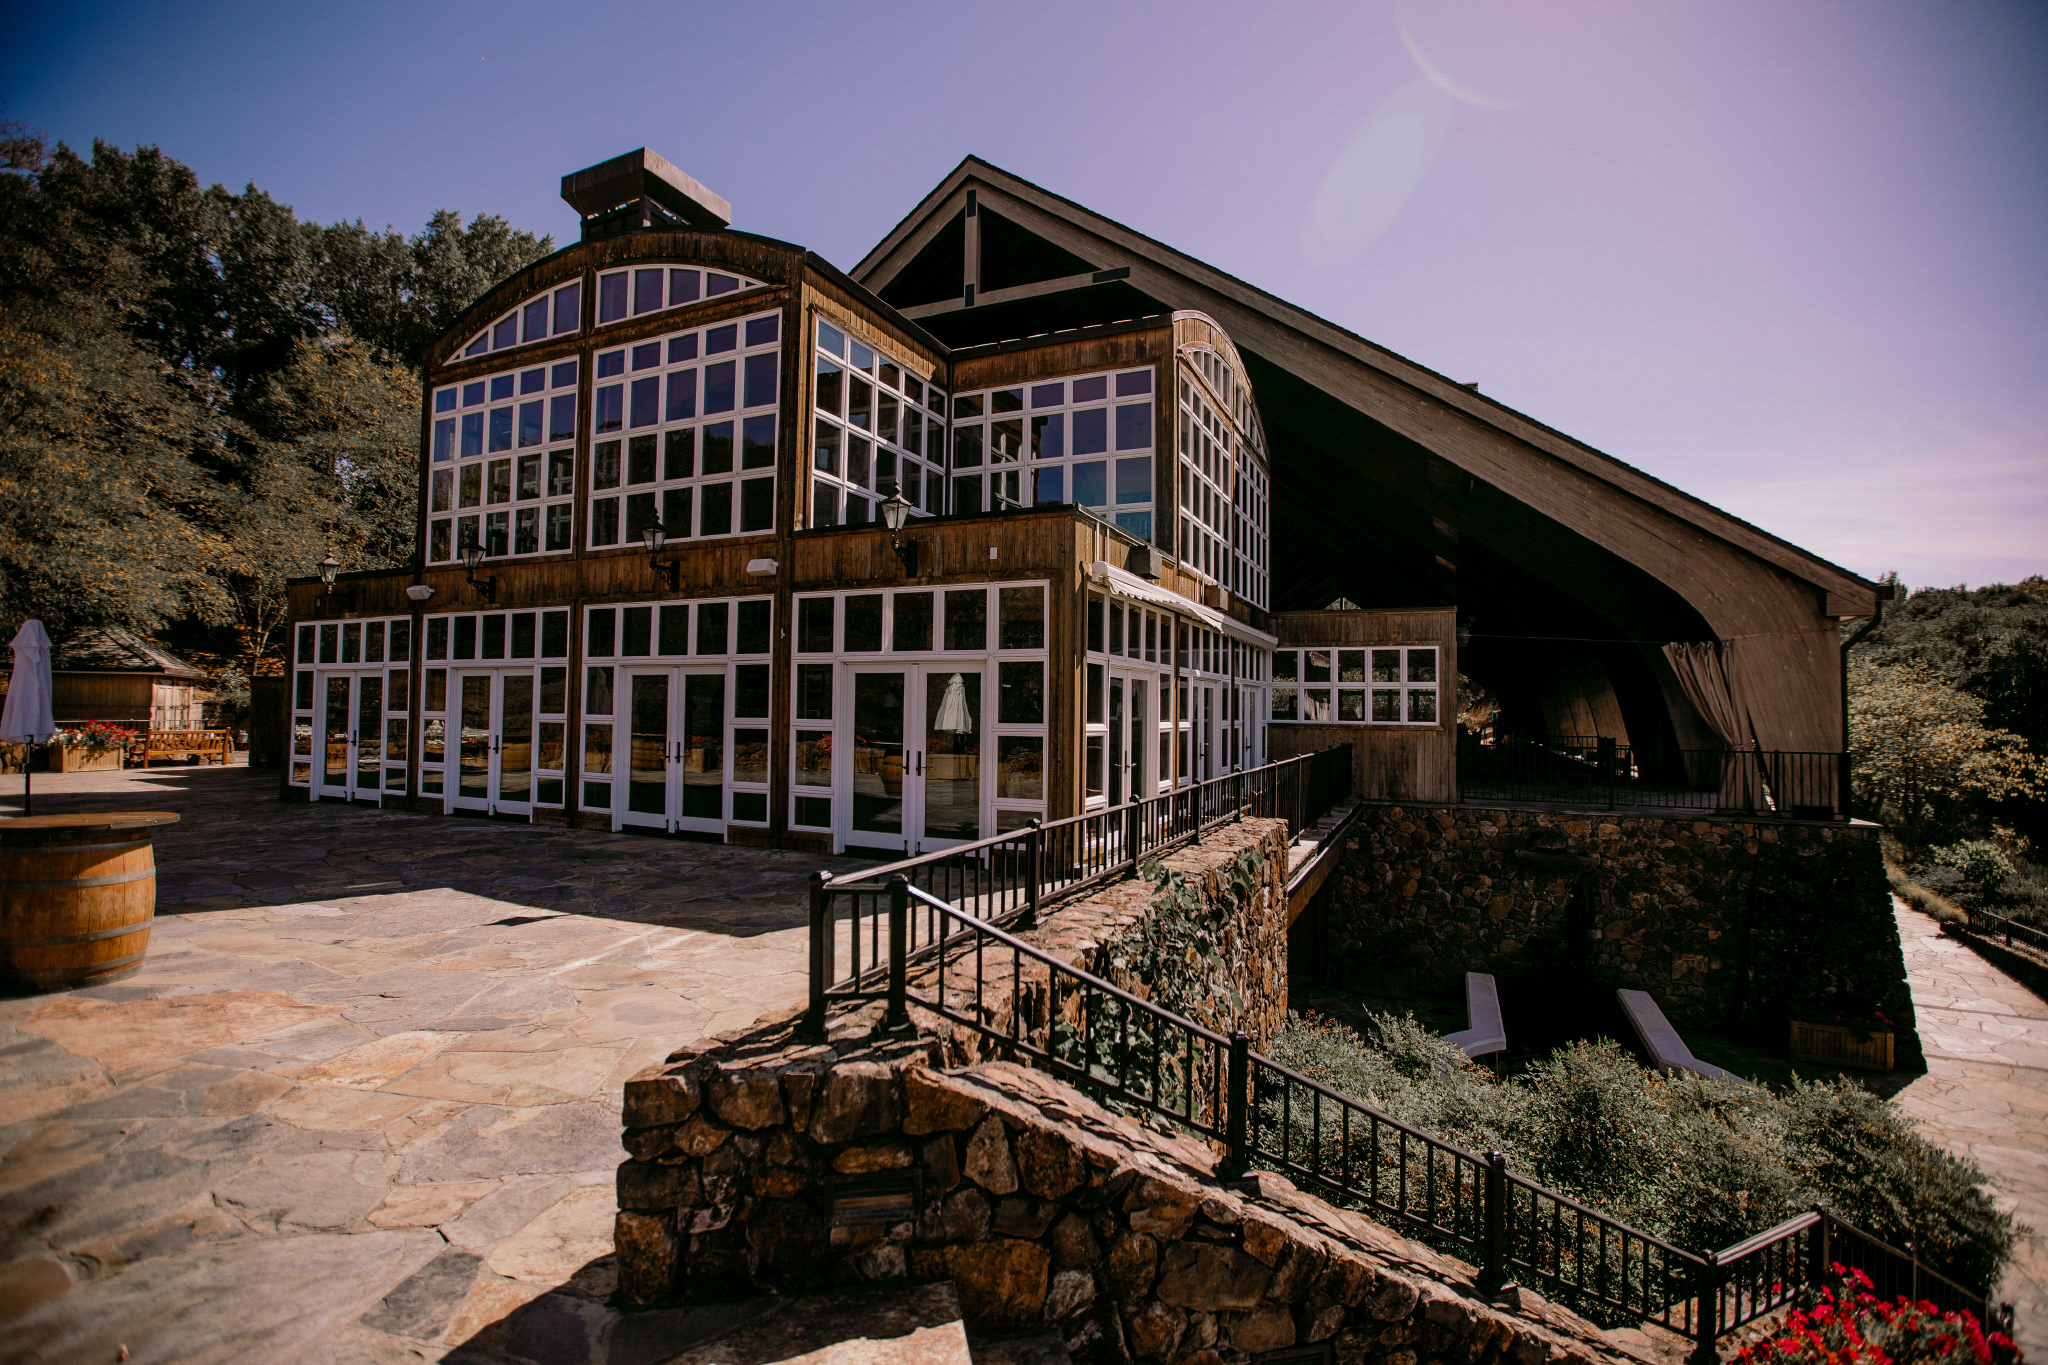 san diego wedding   photographer | structure with many glass windows and large covered building   behind